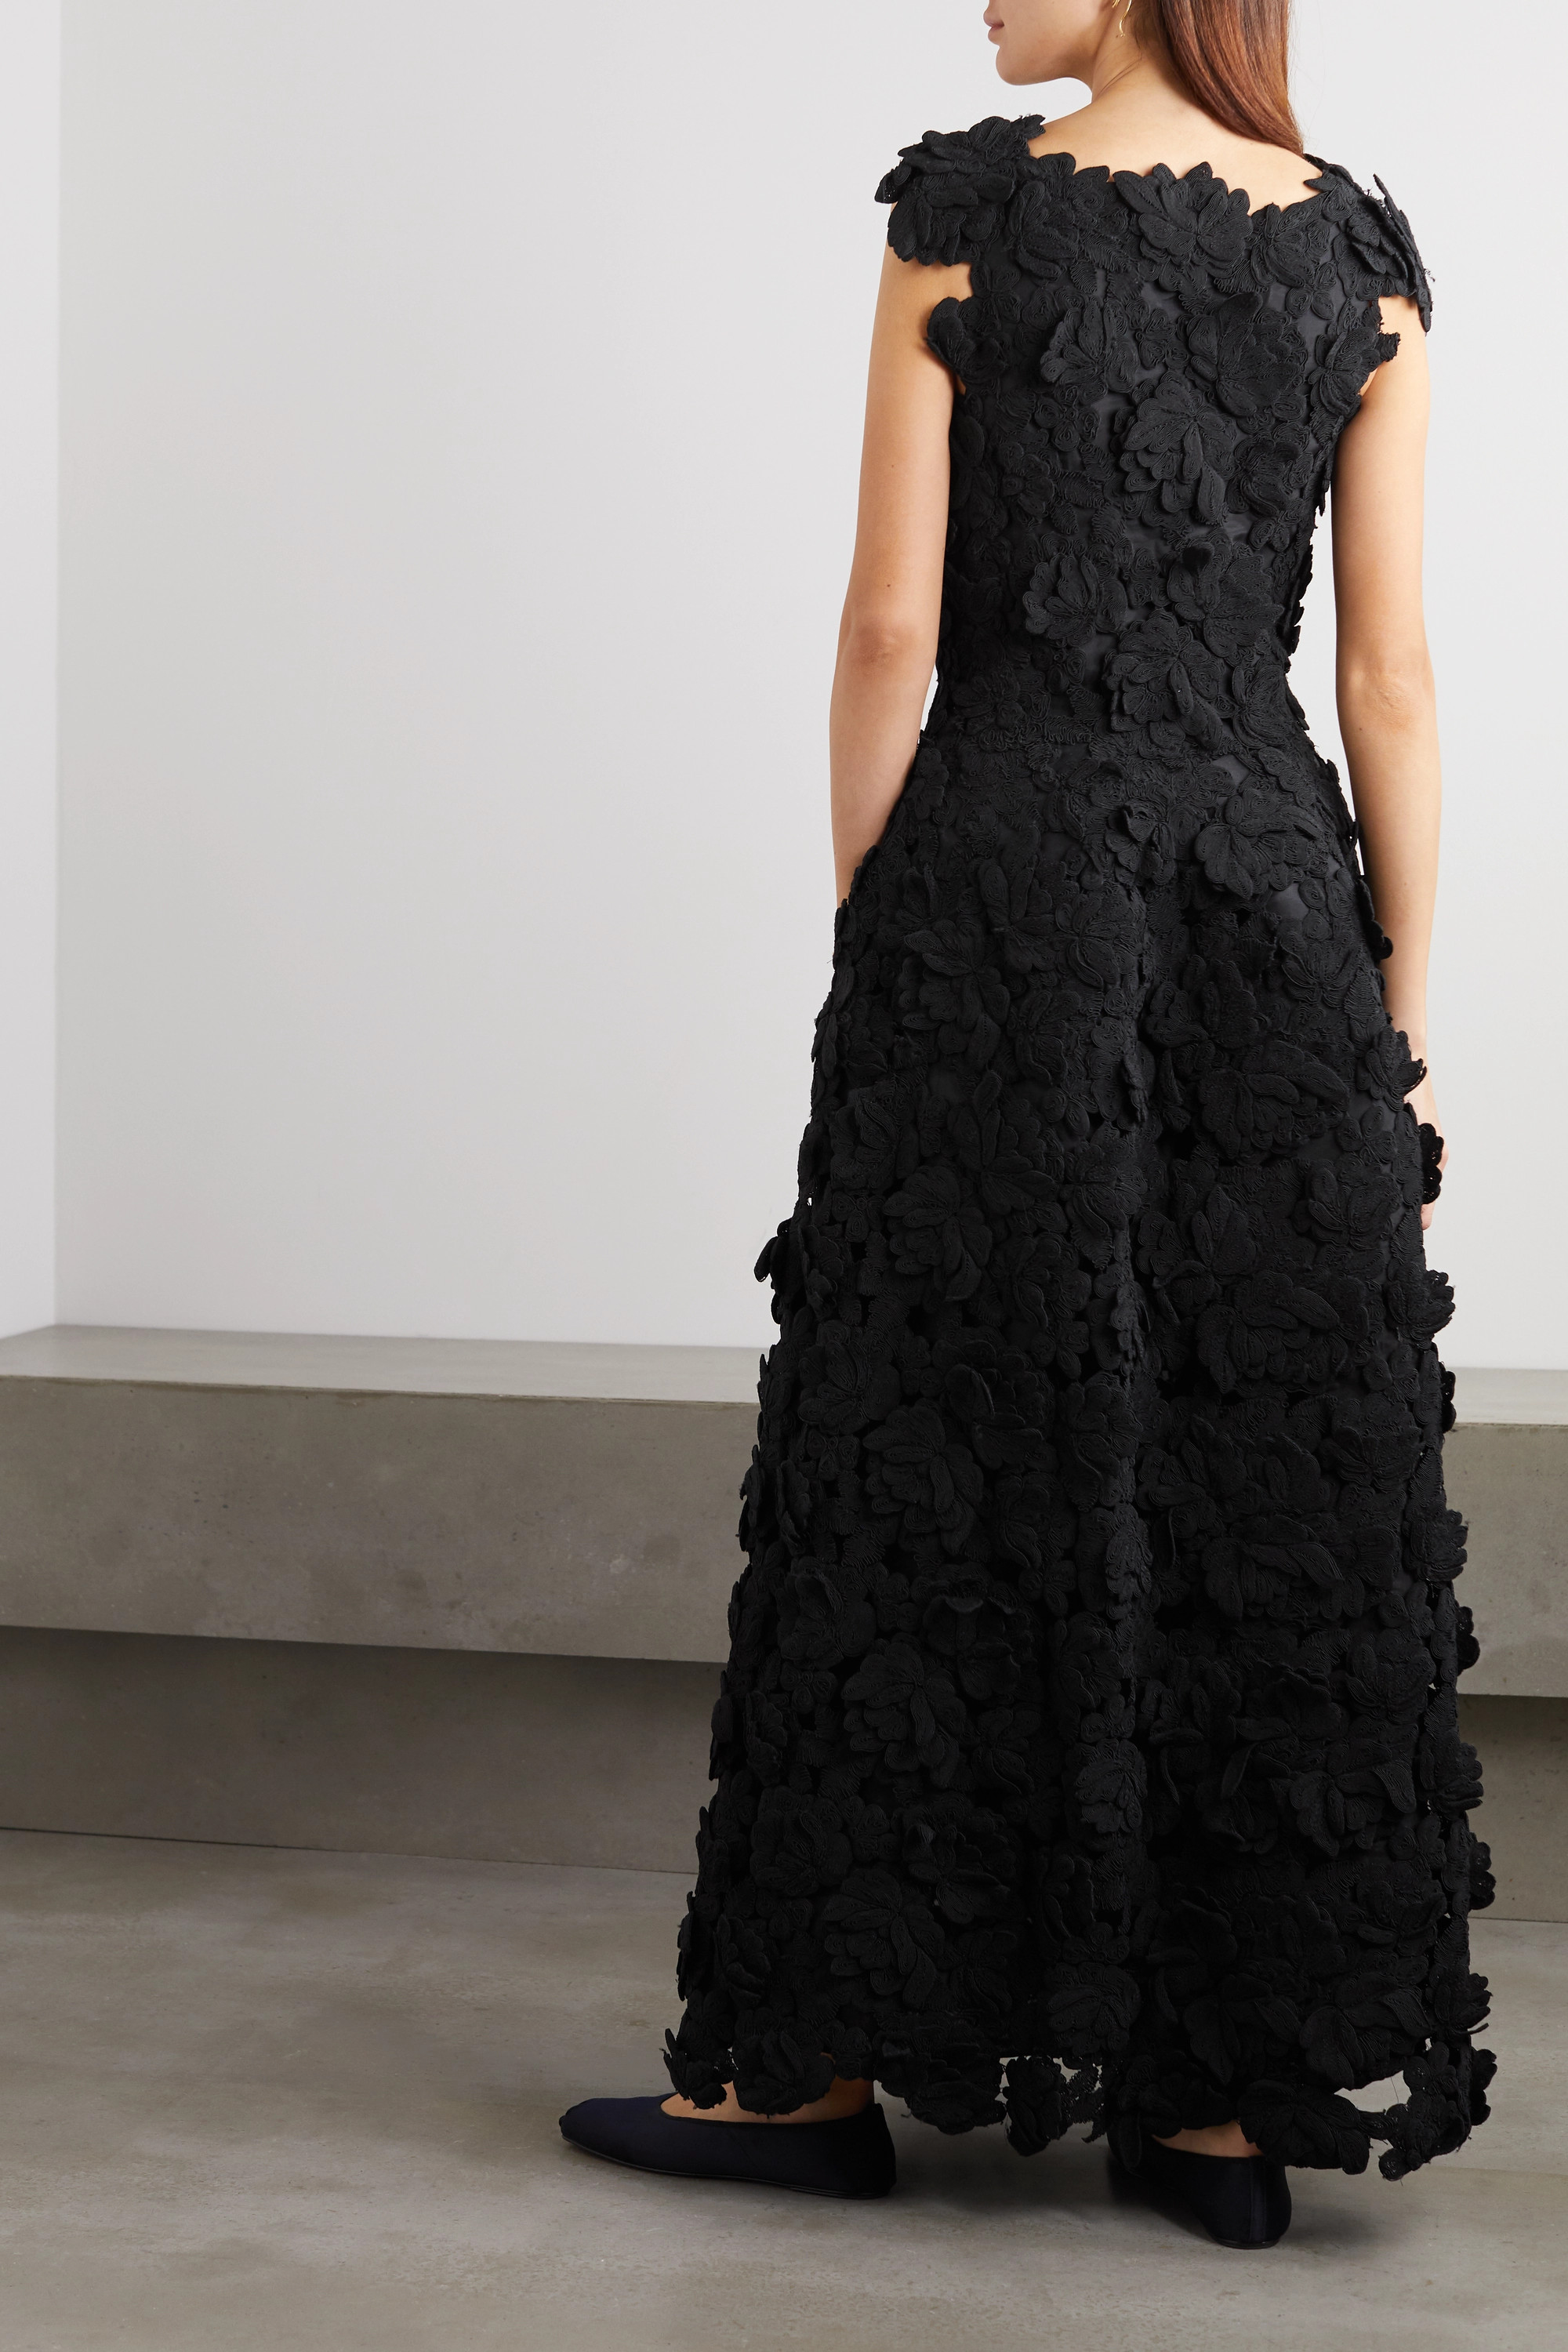 The Row Luciano appliquéd woven gown